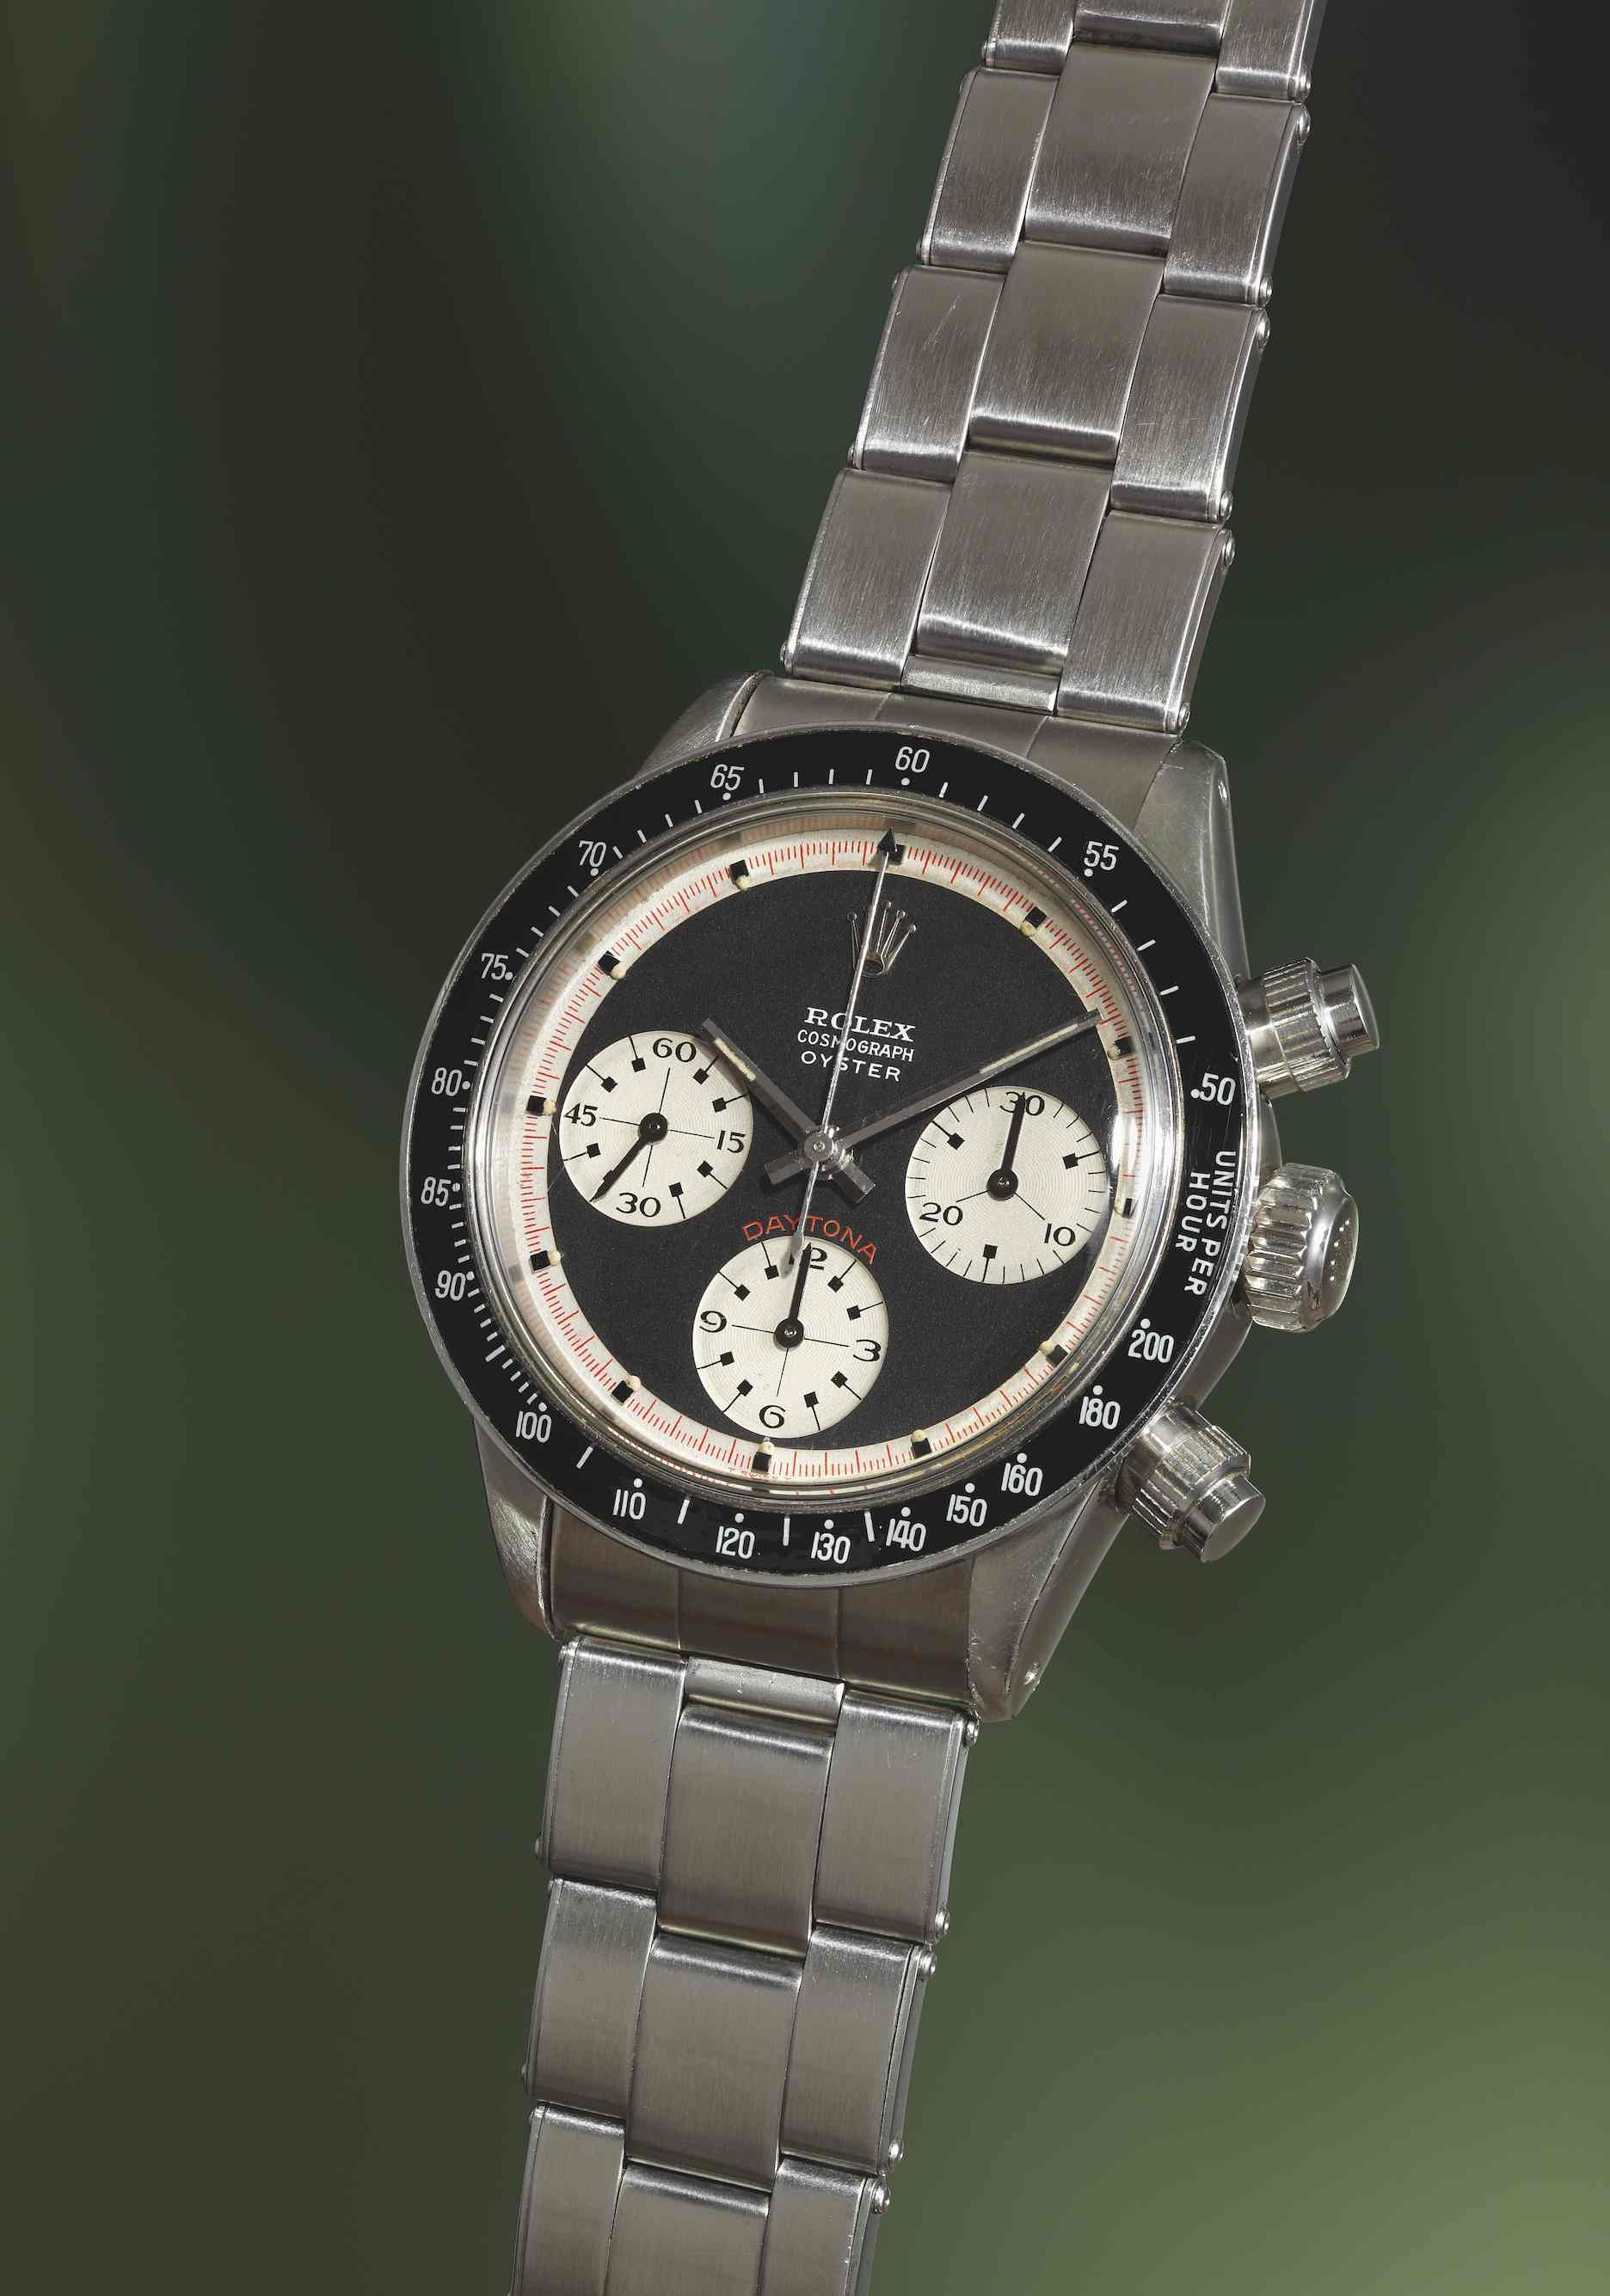 Historic Rolex Watches On The Block